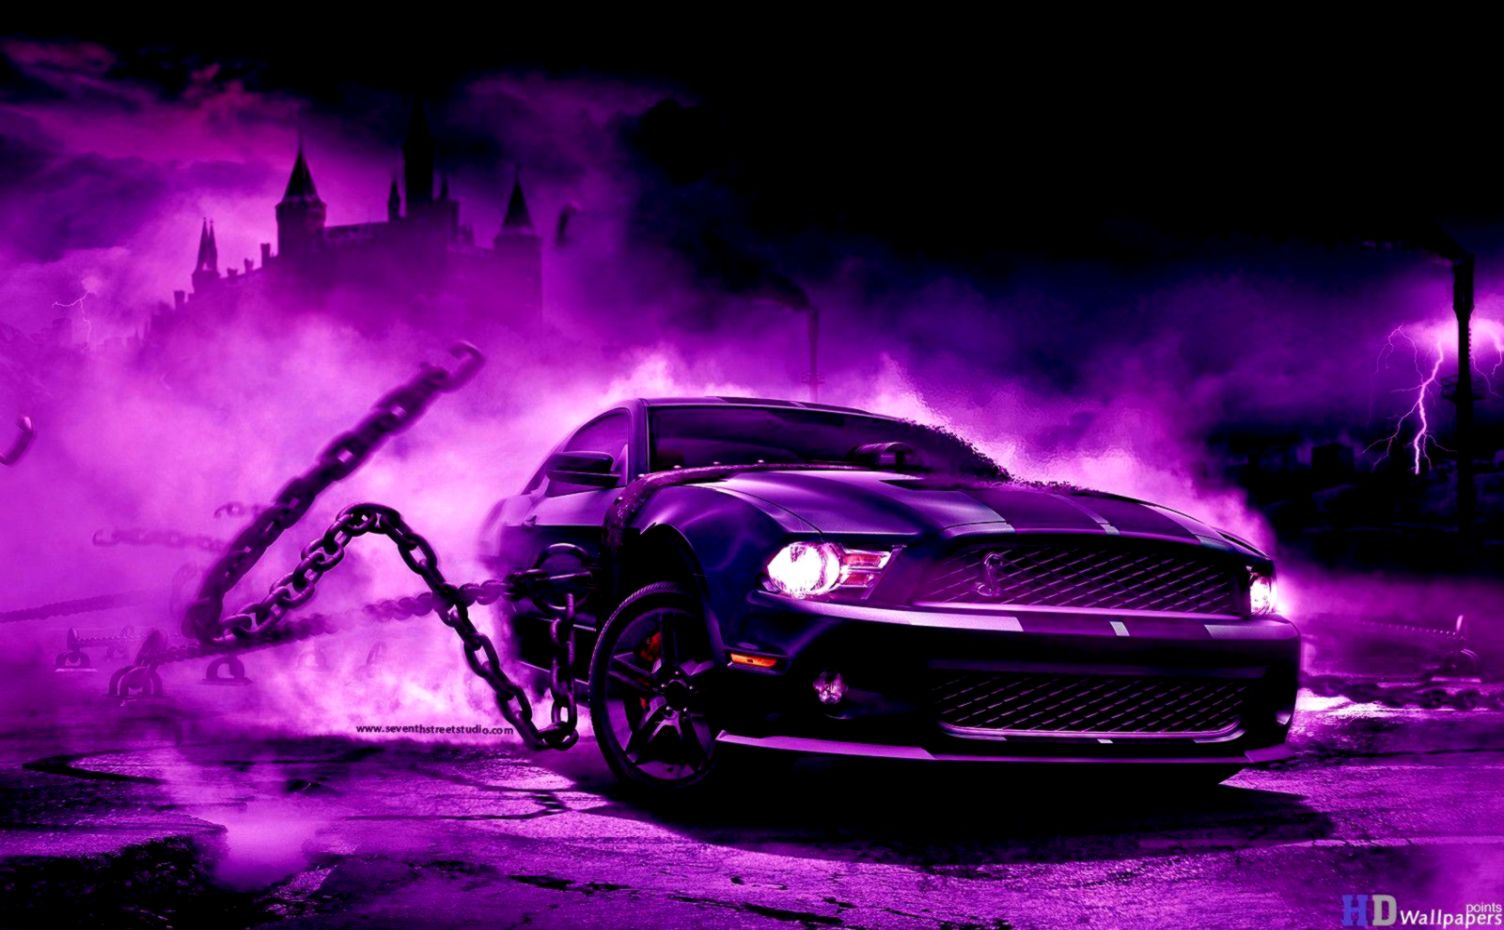 Cool 3D Wallpaper Purple | Nababan Wallpapers